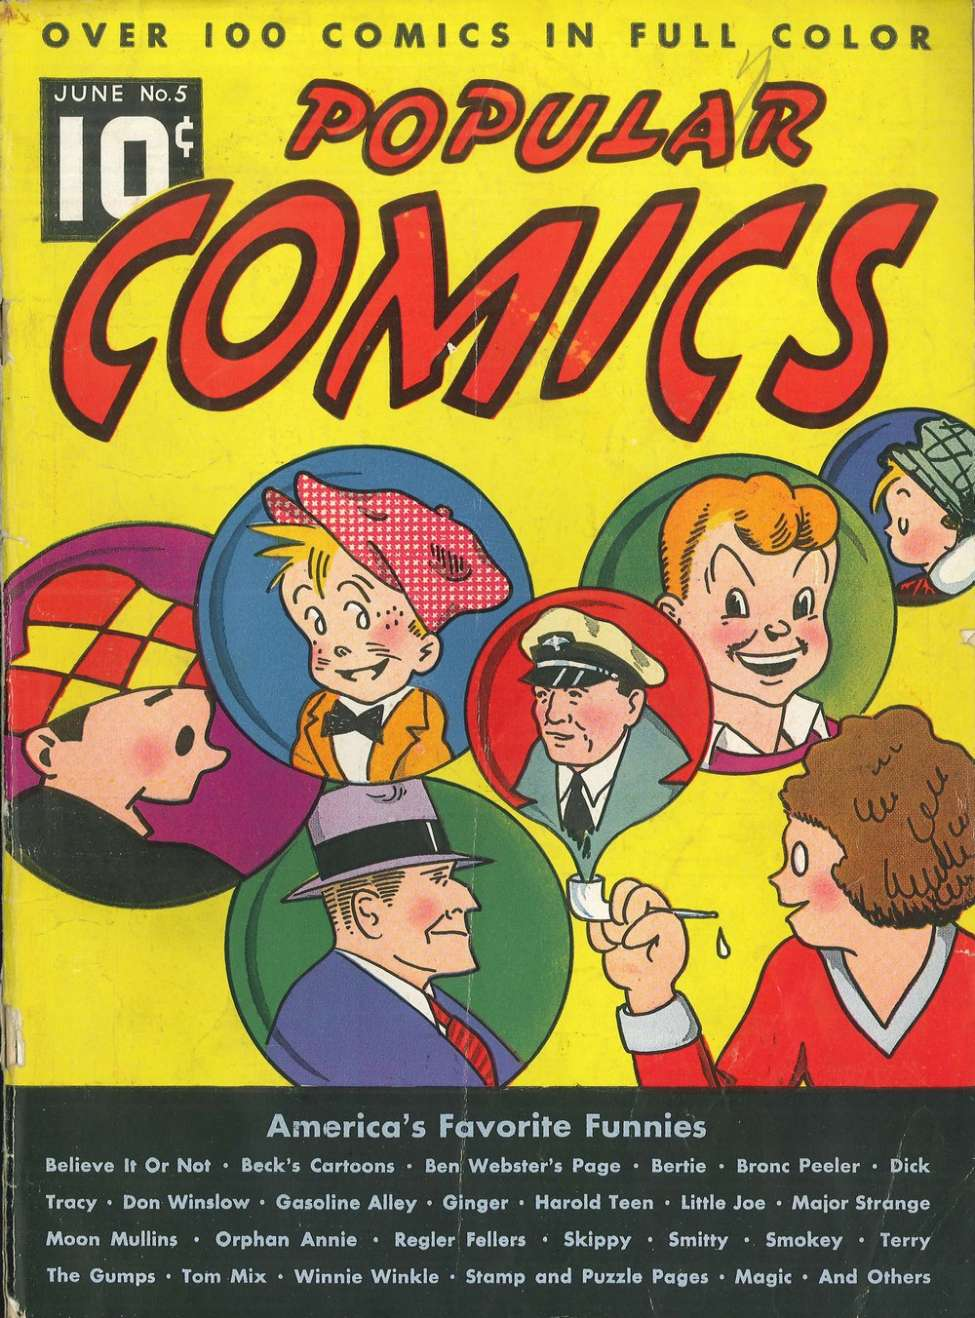 Comic Book Cover For Popular Comics #5